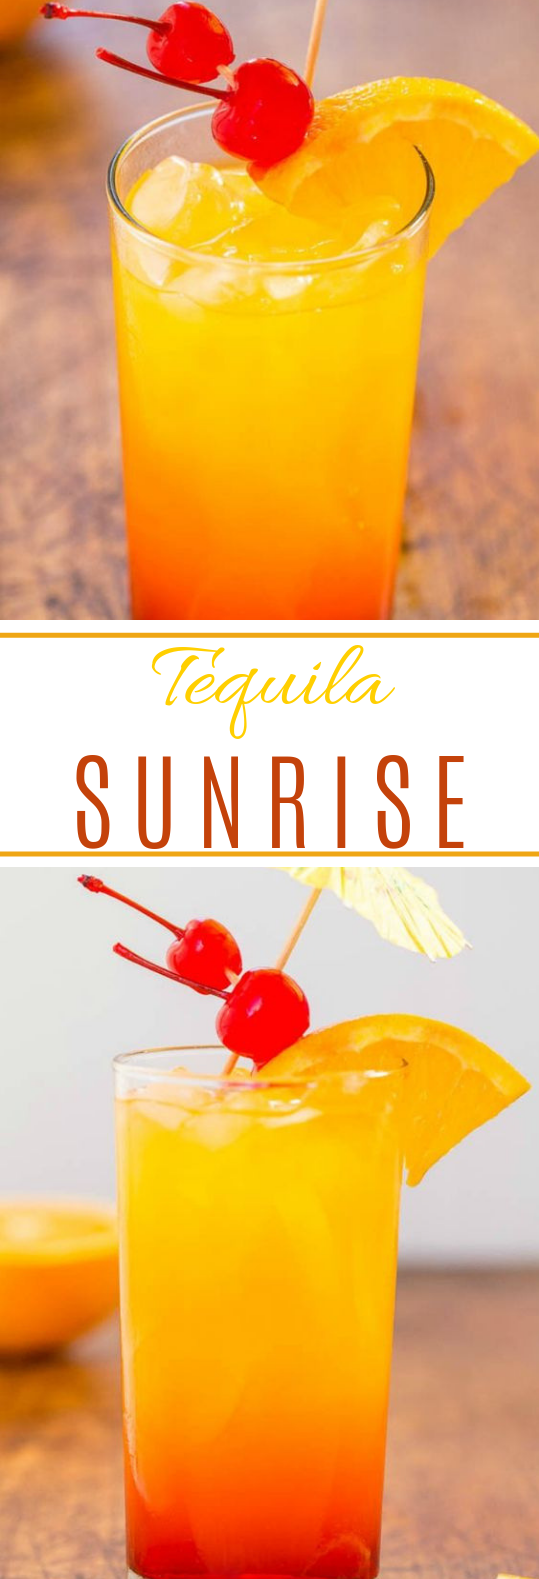 Tequila Sunrise #drink #summercocktail